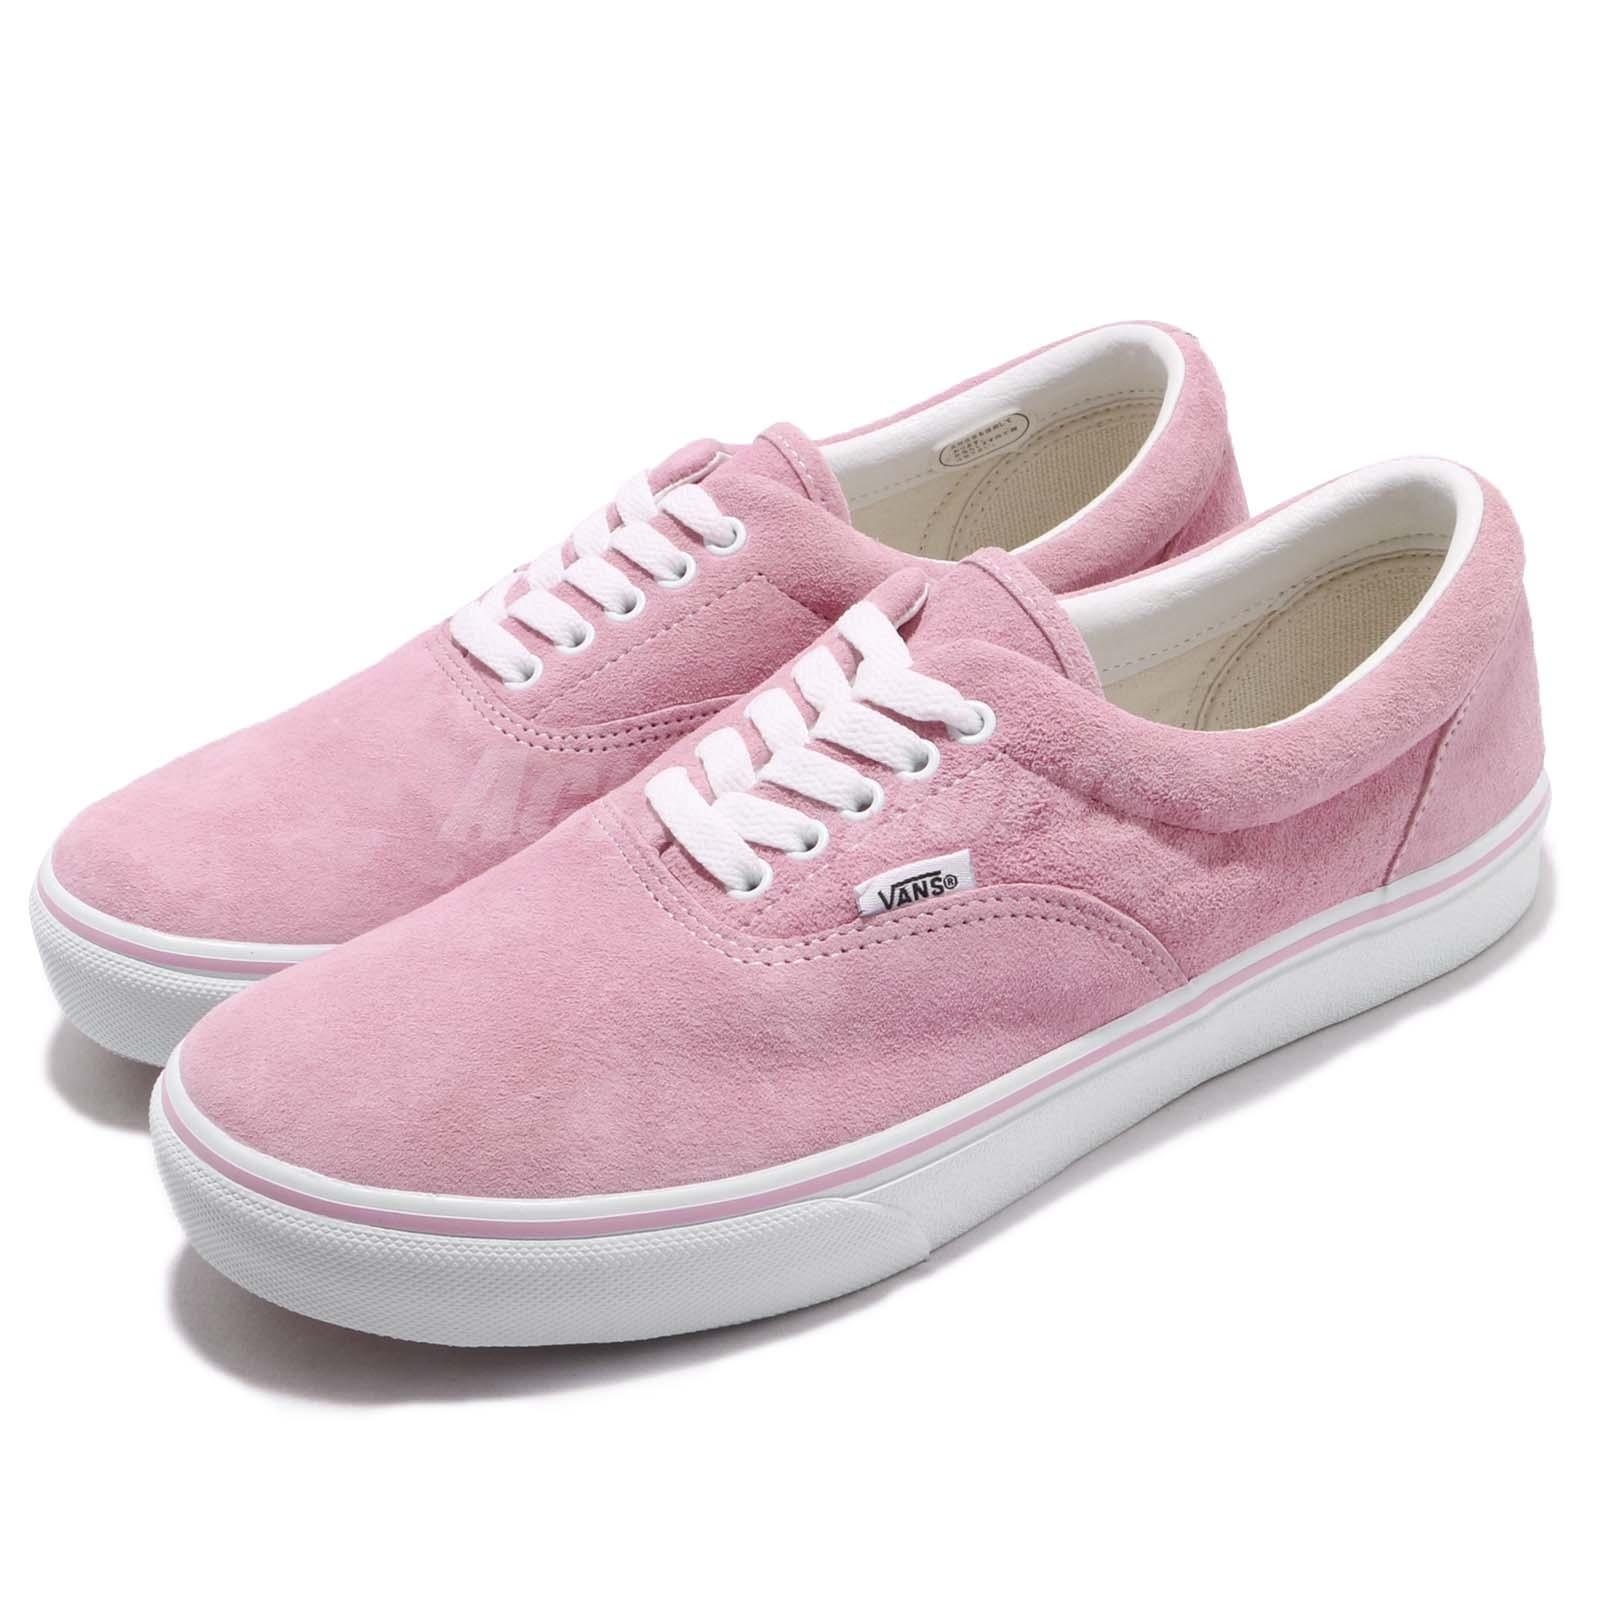 be8932984d Details about Vans Era DX Pink White Suede Men Skate Boarding Casual Shoes  Sneakers V95SCLWV